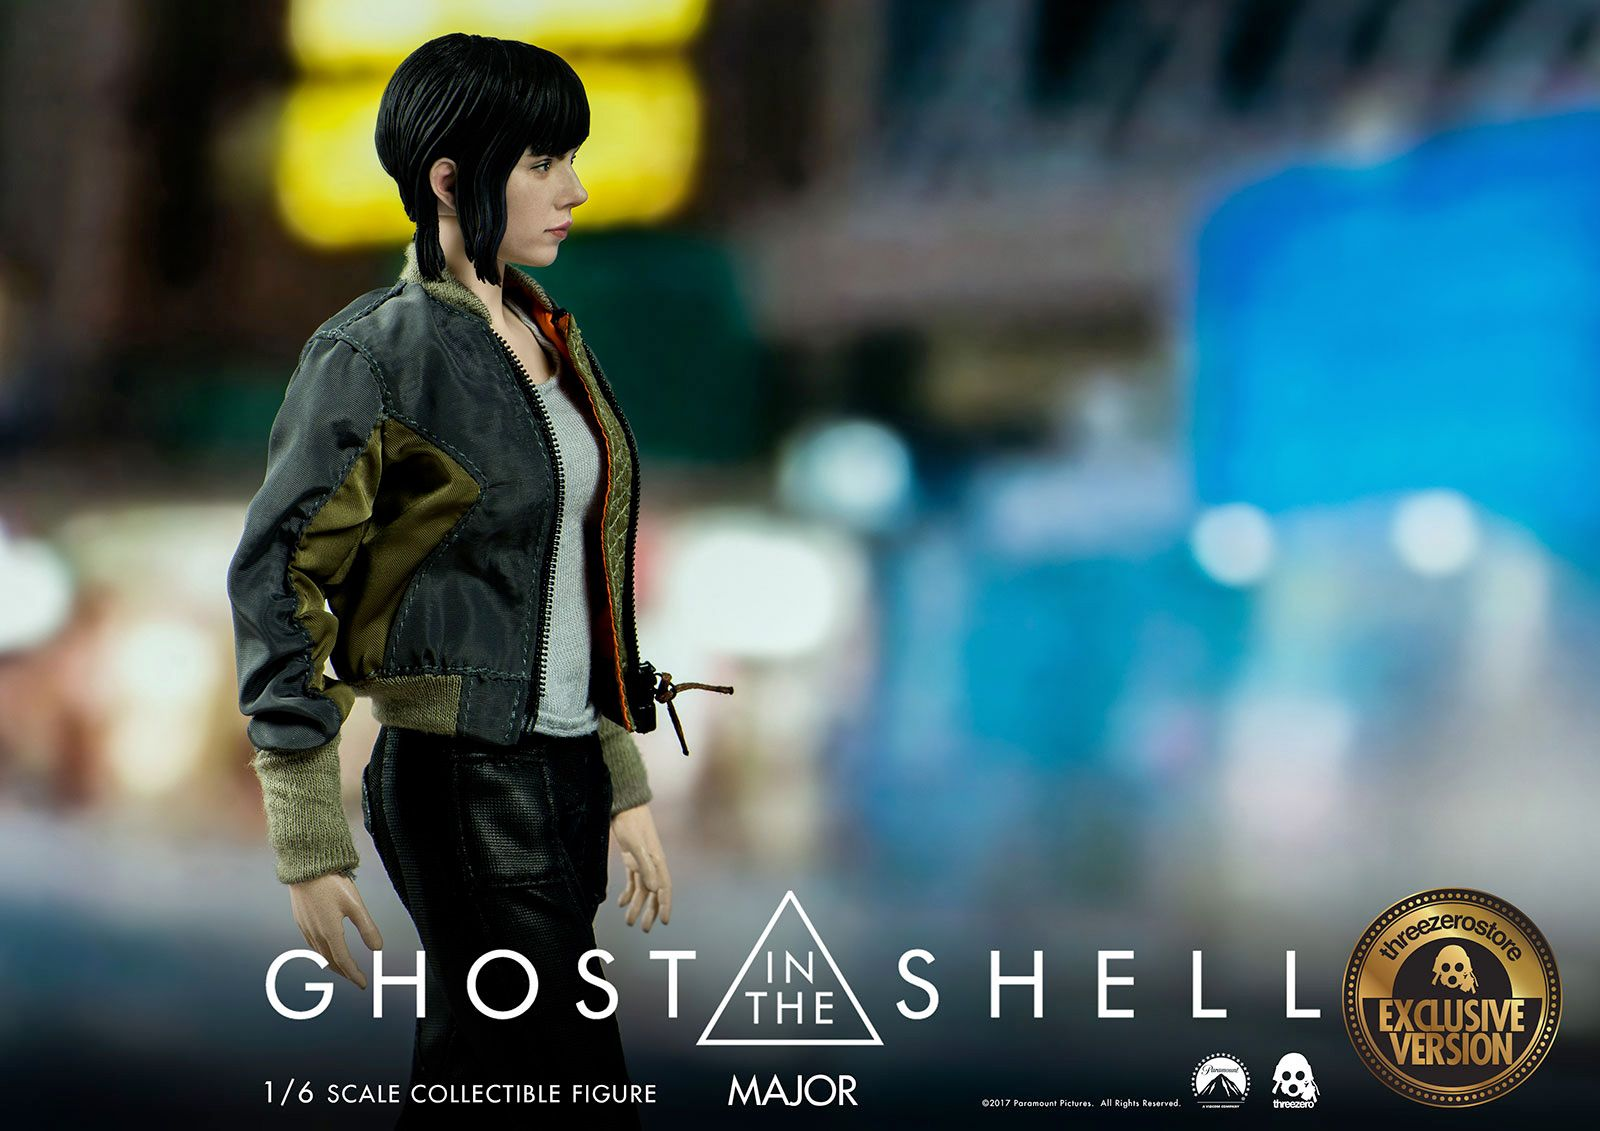 Ghost-In-The-Shell-MAJOR-Collectible-Action-Figure-09